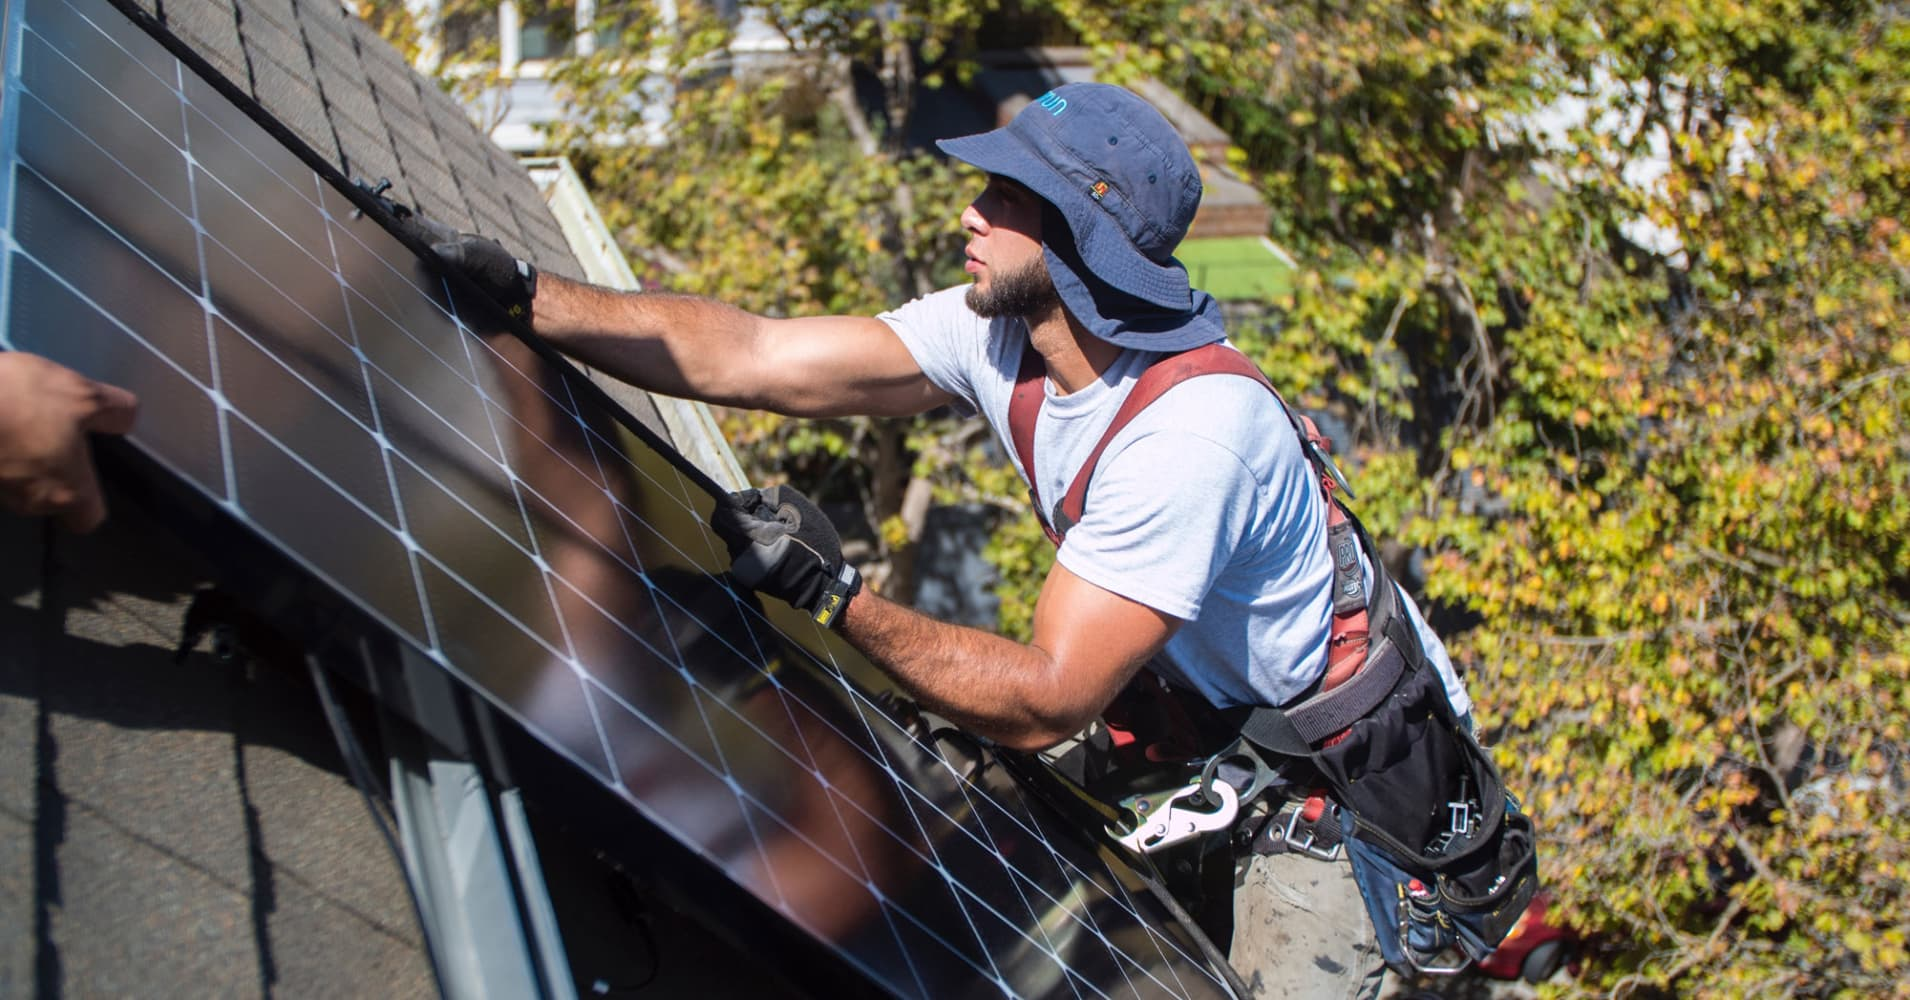 California Approves Plan To Mandate Solar Panels On New Homes